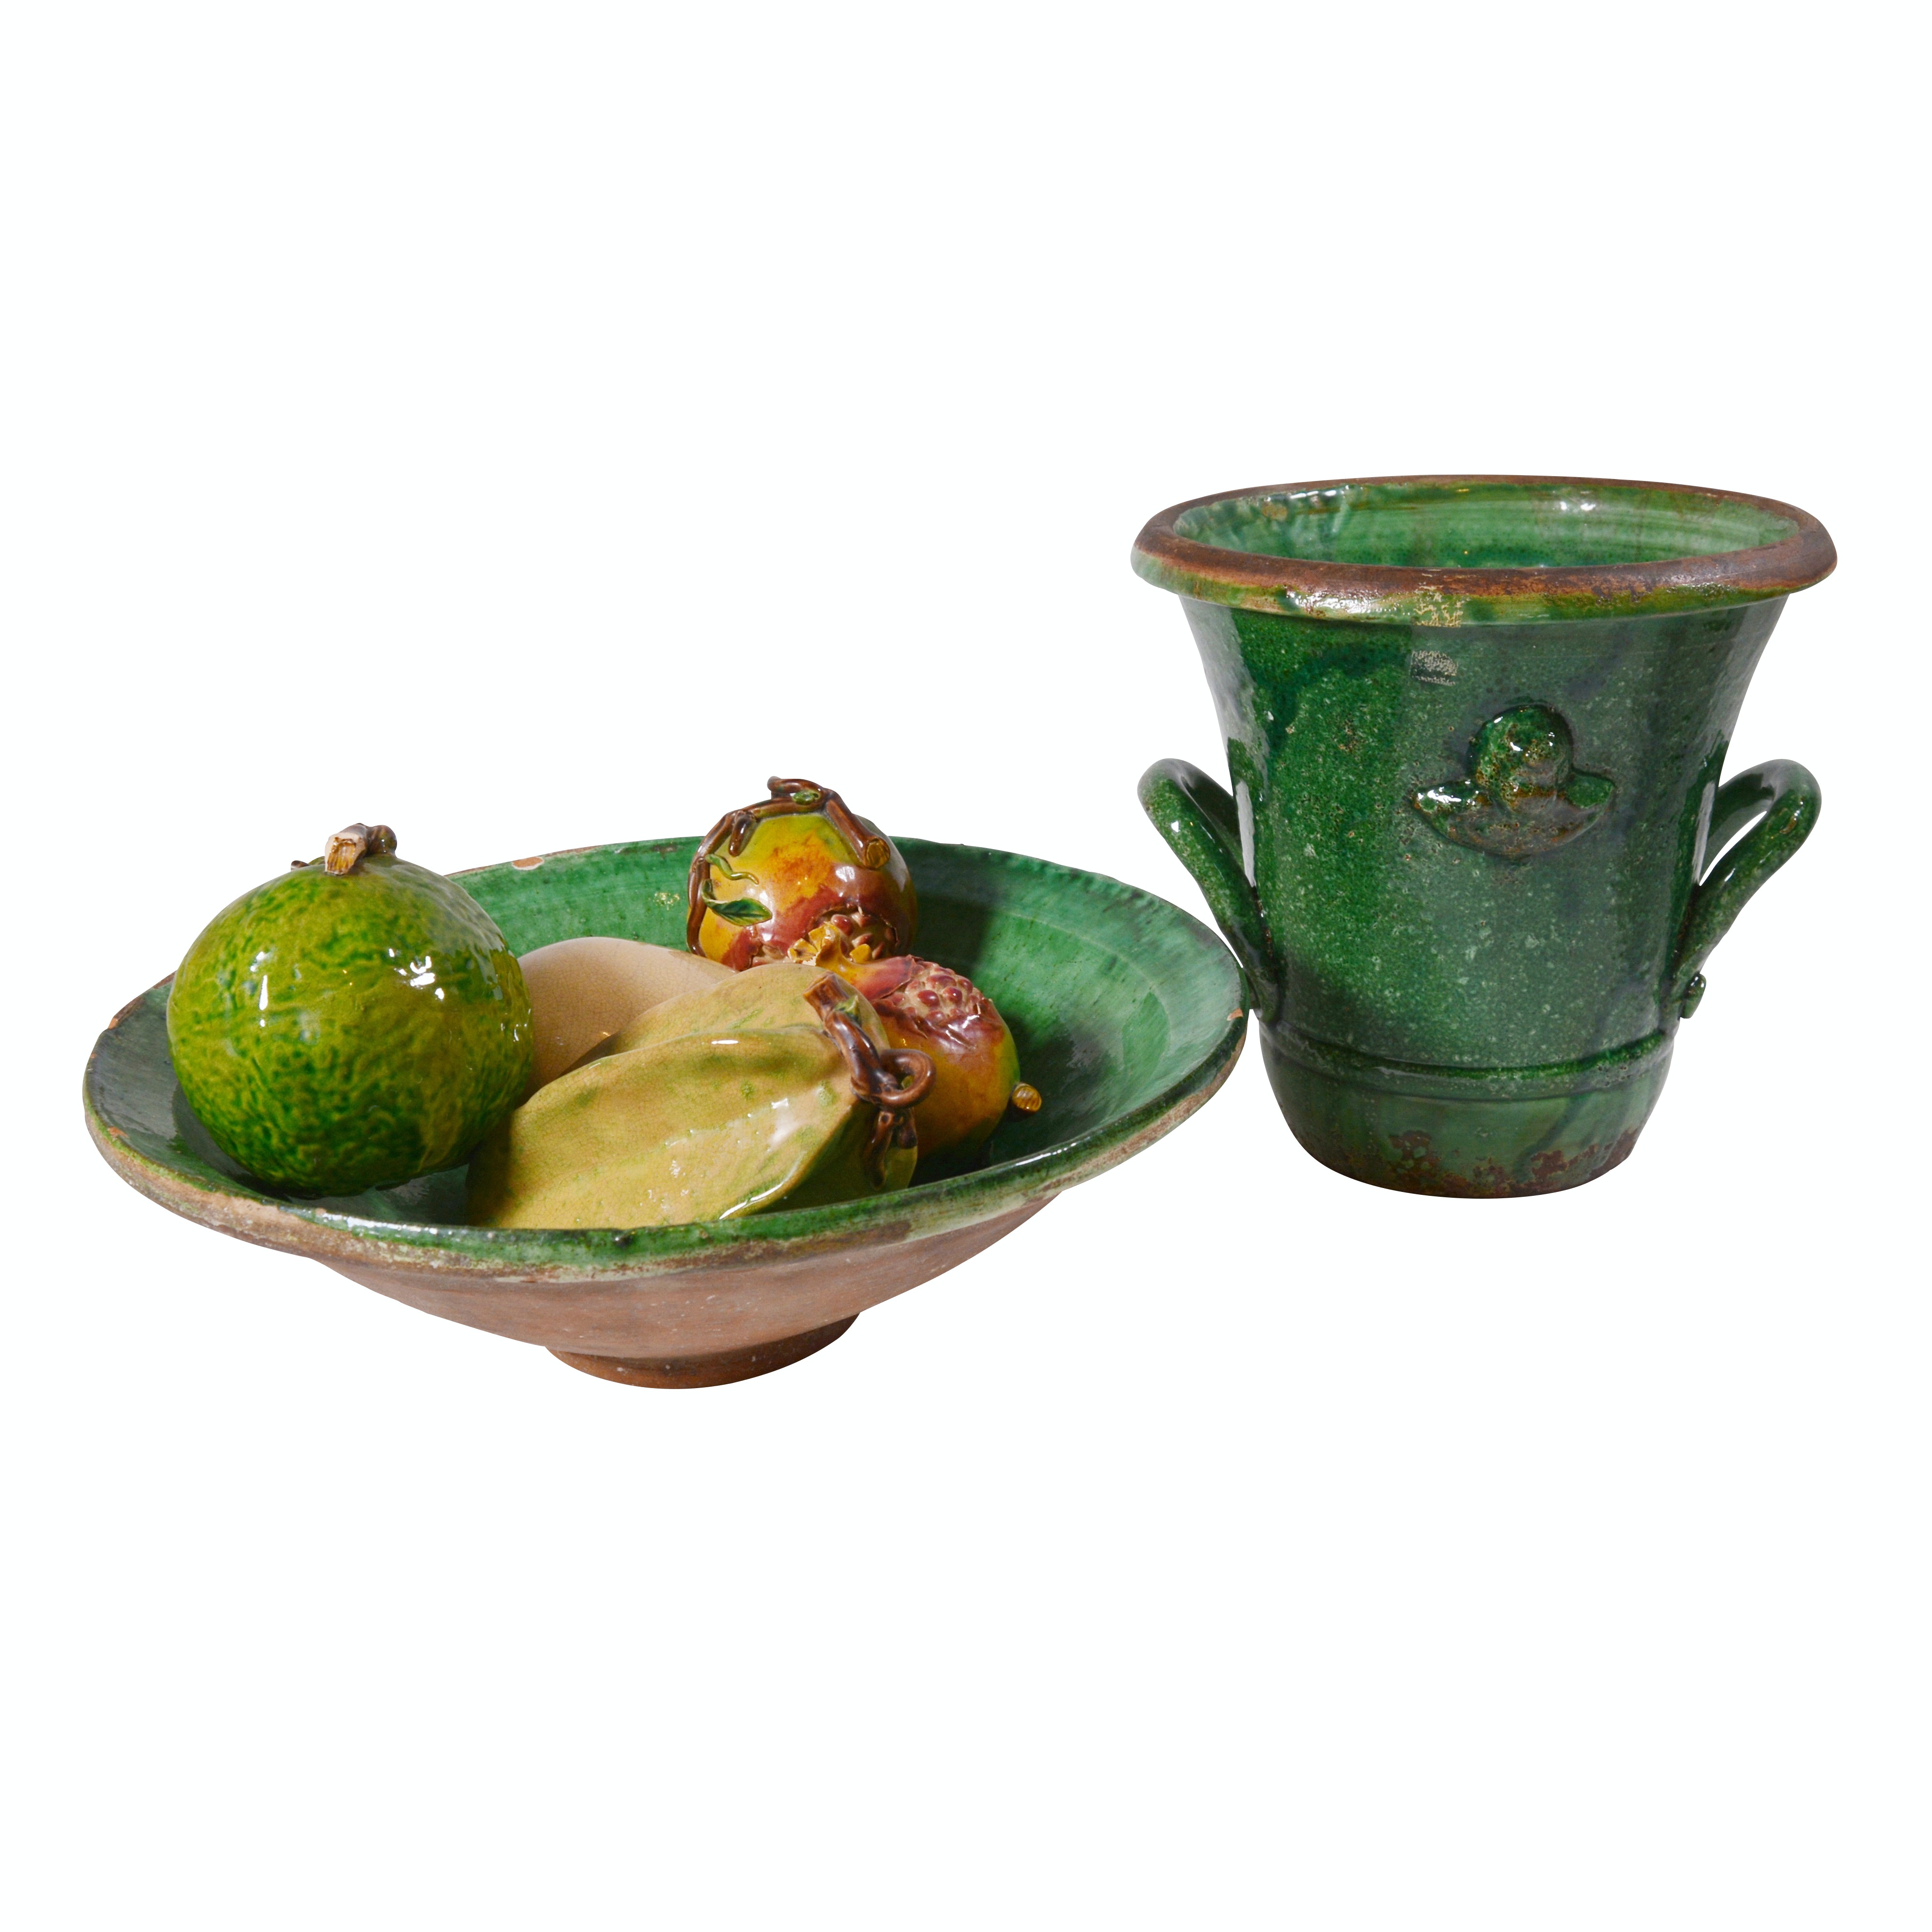 Vietri Green Glazed Pottery Bowl and Urn with Ceramic Fruit, Contemporary